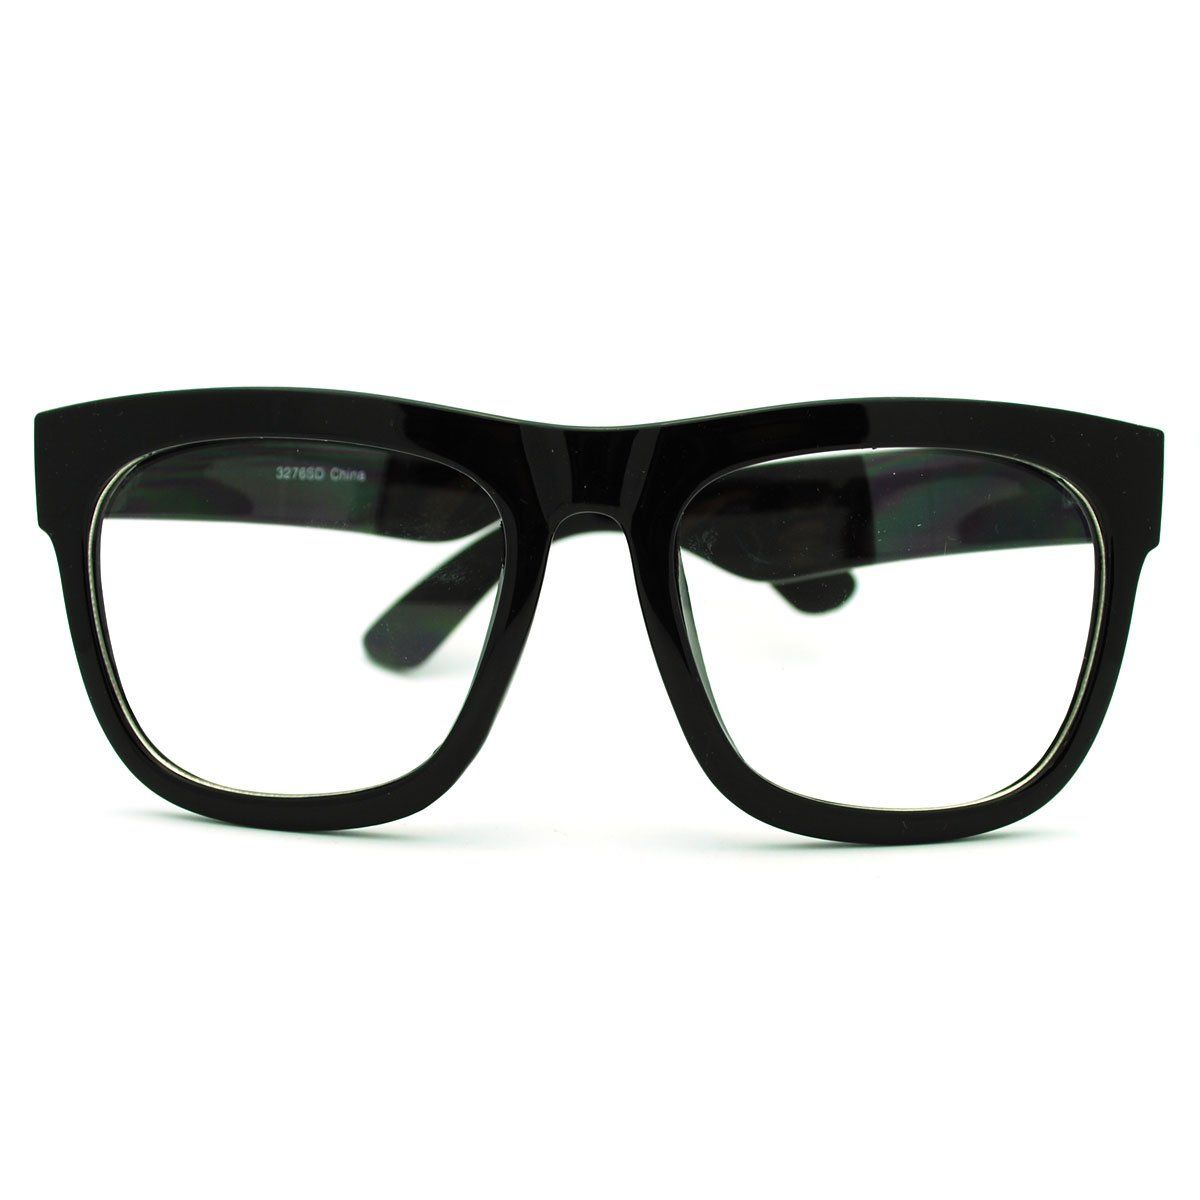 71e21f96c8c3 Amazon.com: Black Oversized Wayfarer Square Glasses Thick Horn Rim Clear  Lens Frame: Clothing